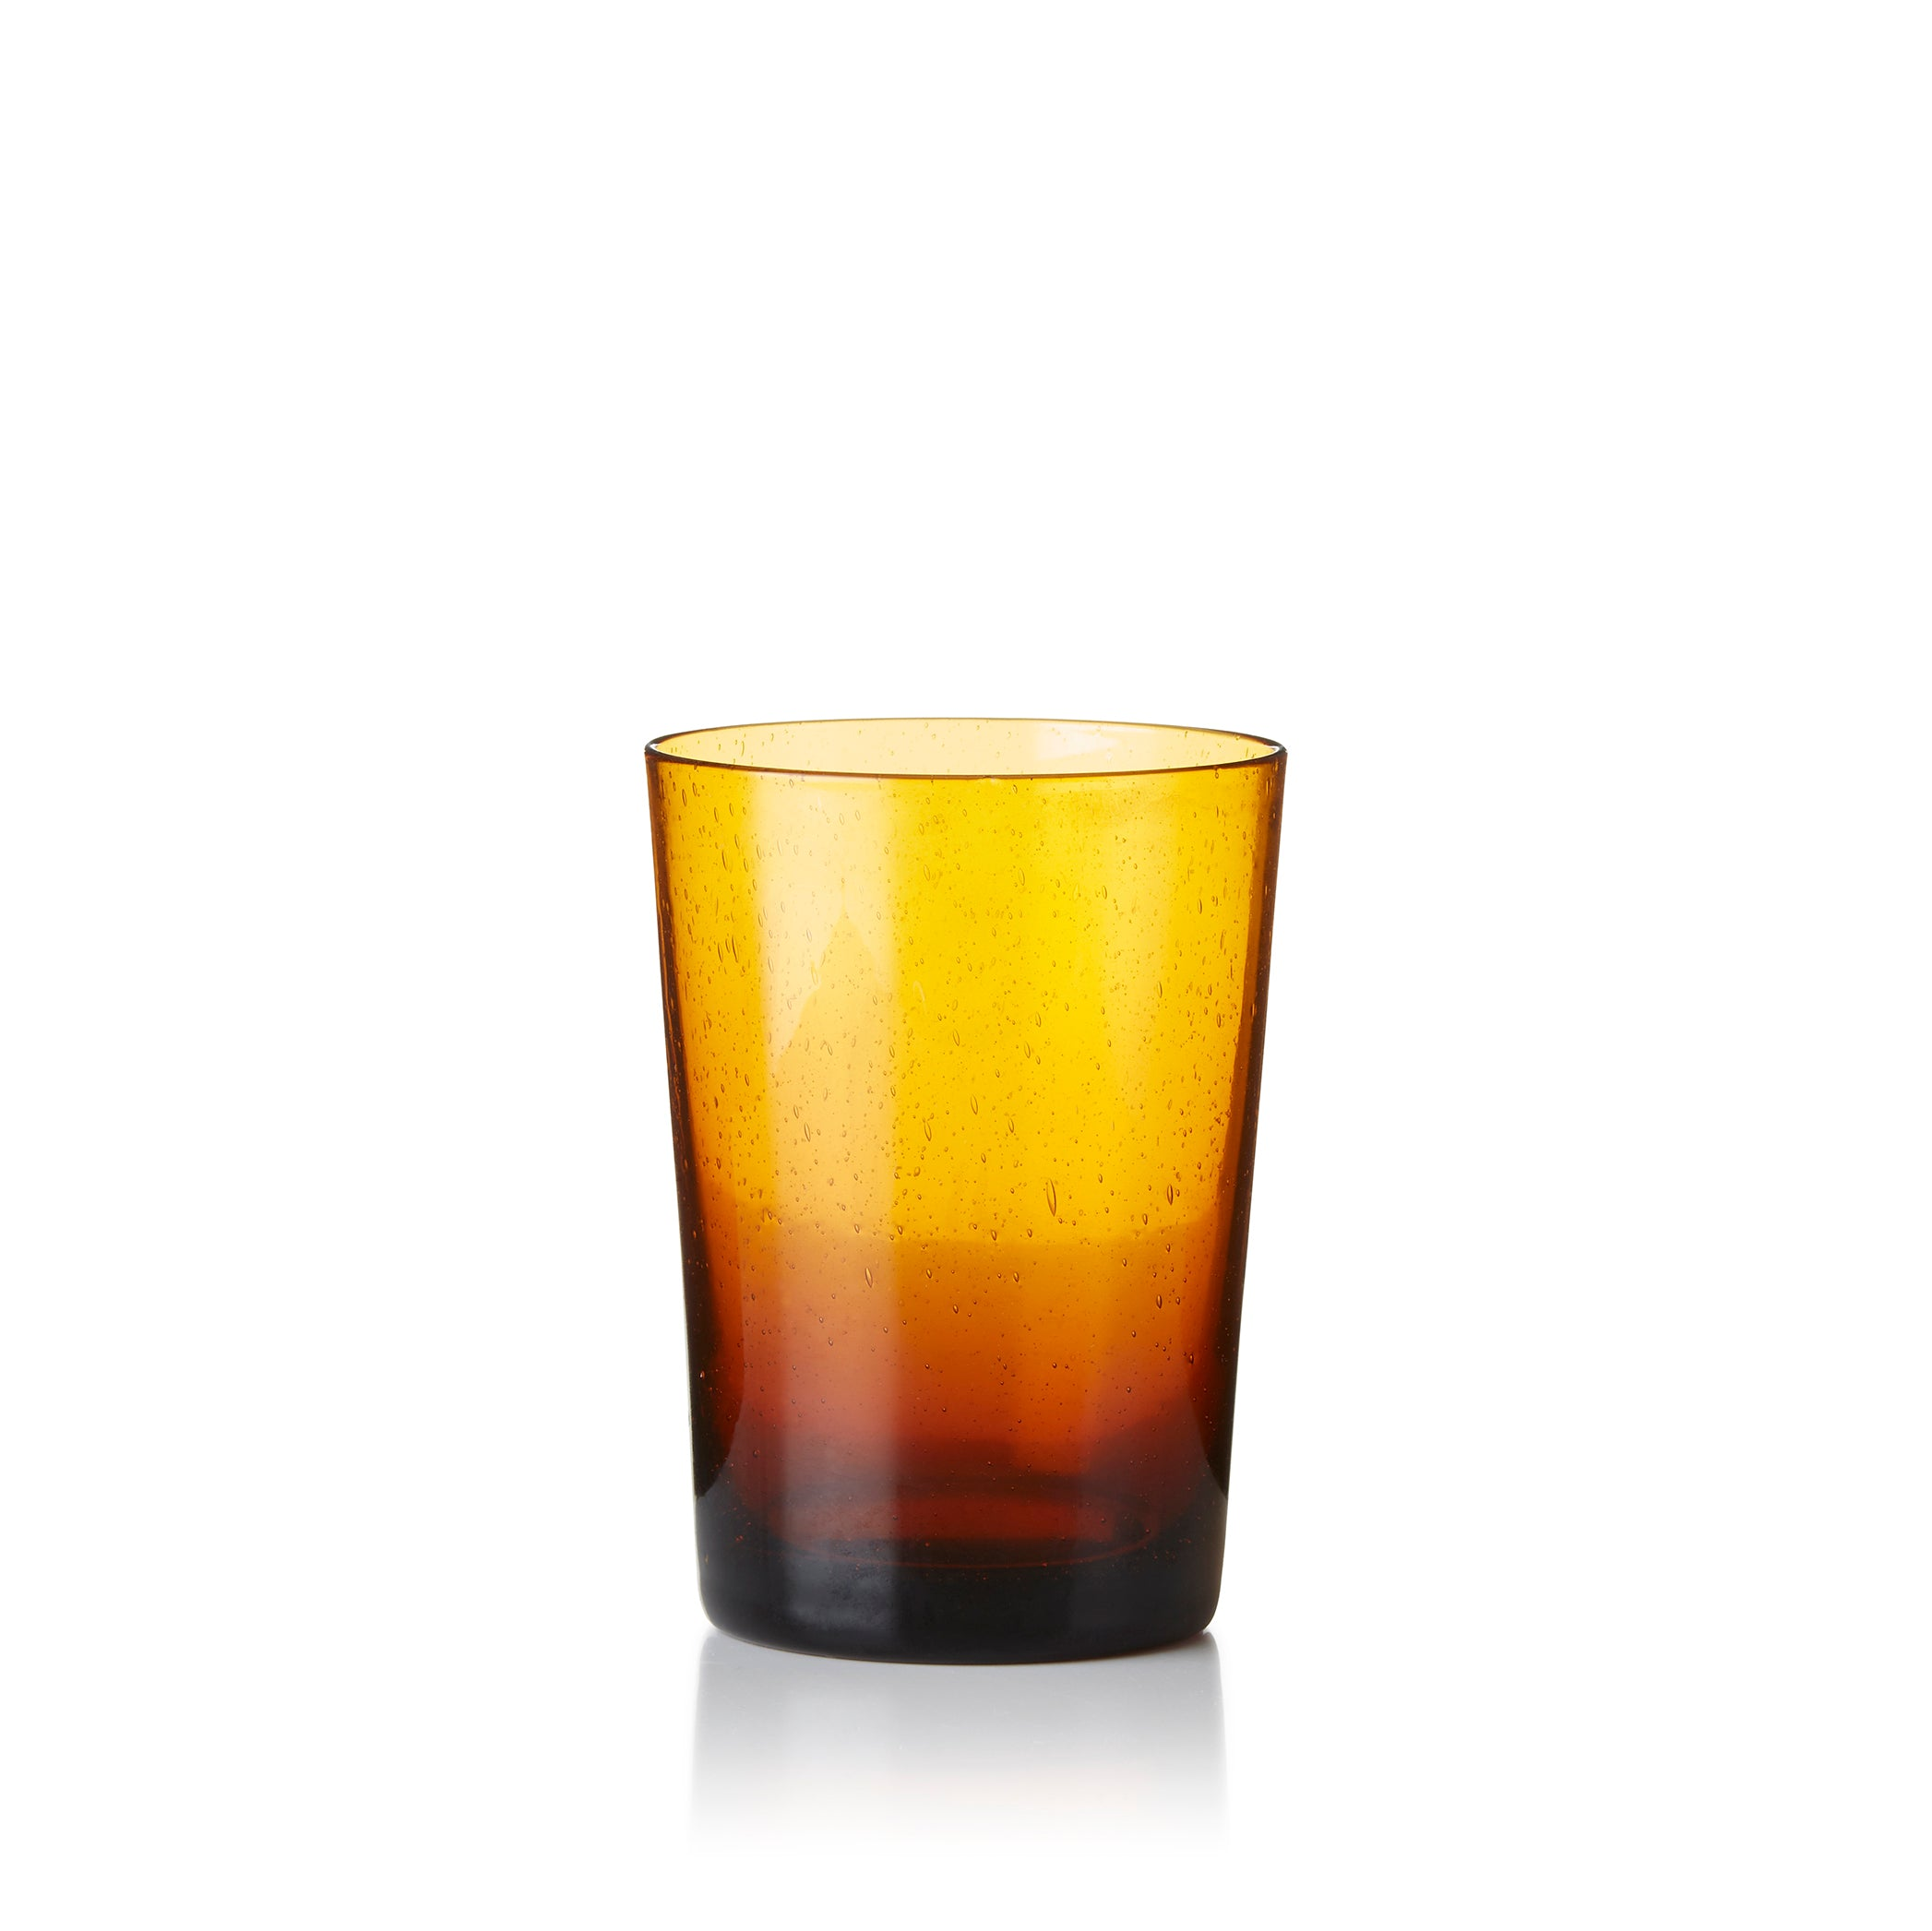 Handmade Glass Tumbler in Amber